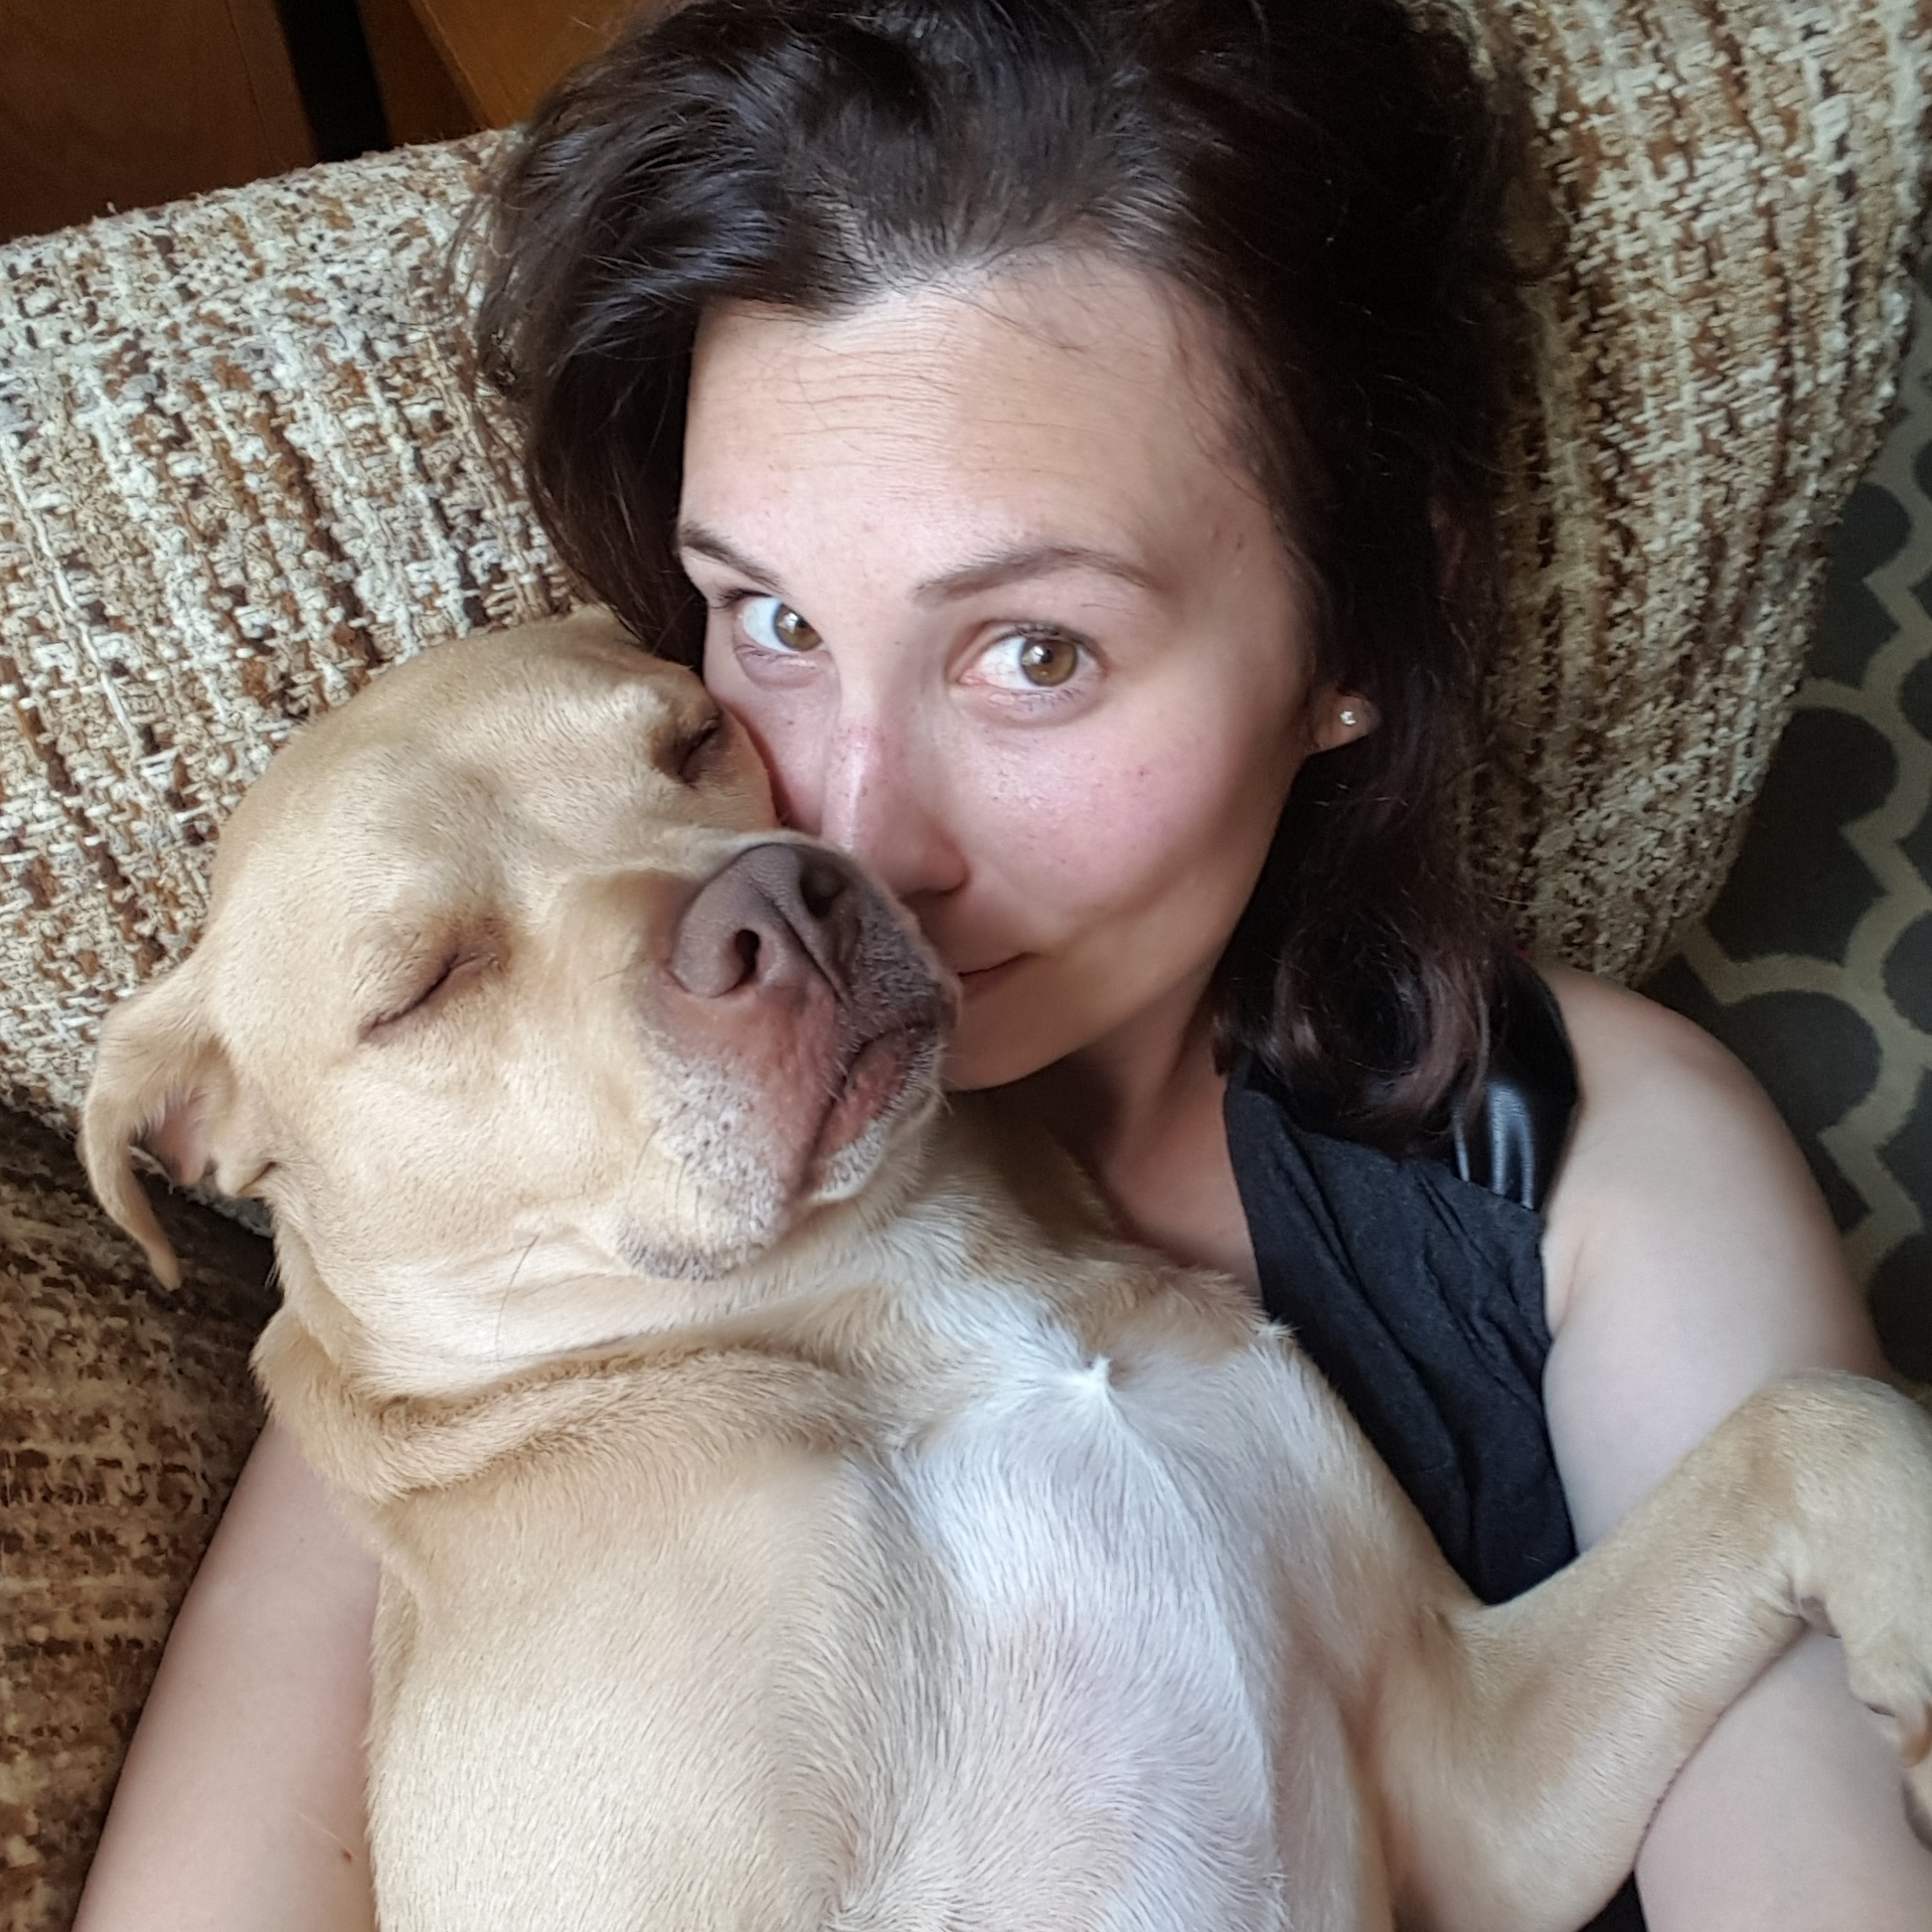 A picture of Amanda Shofner and her dog Scarlet